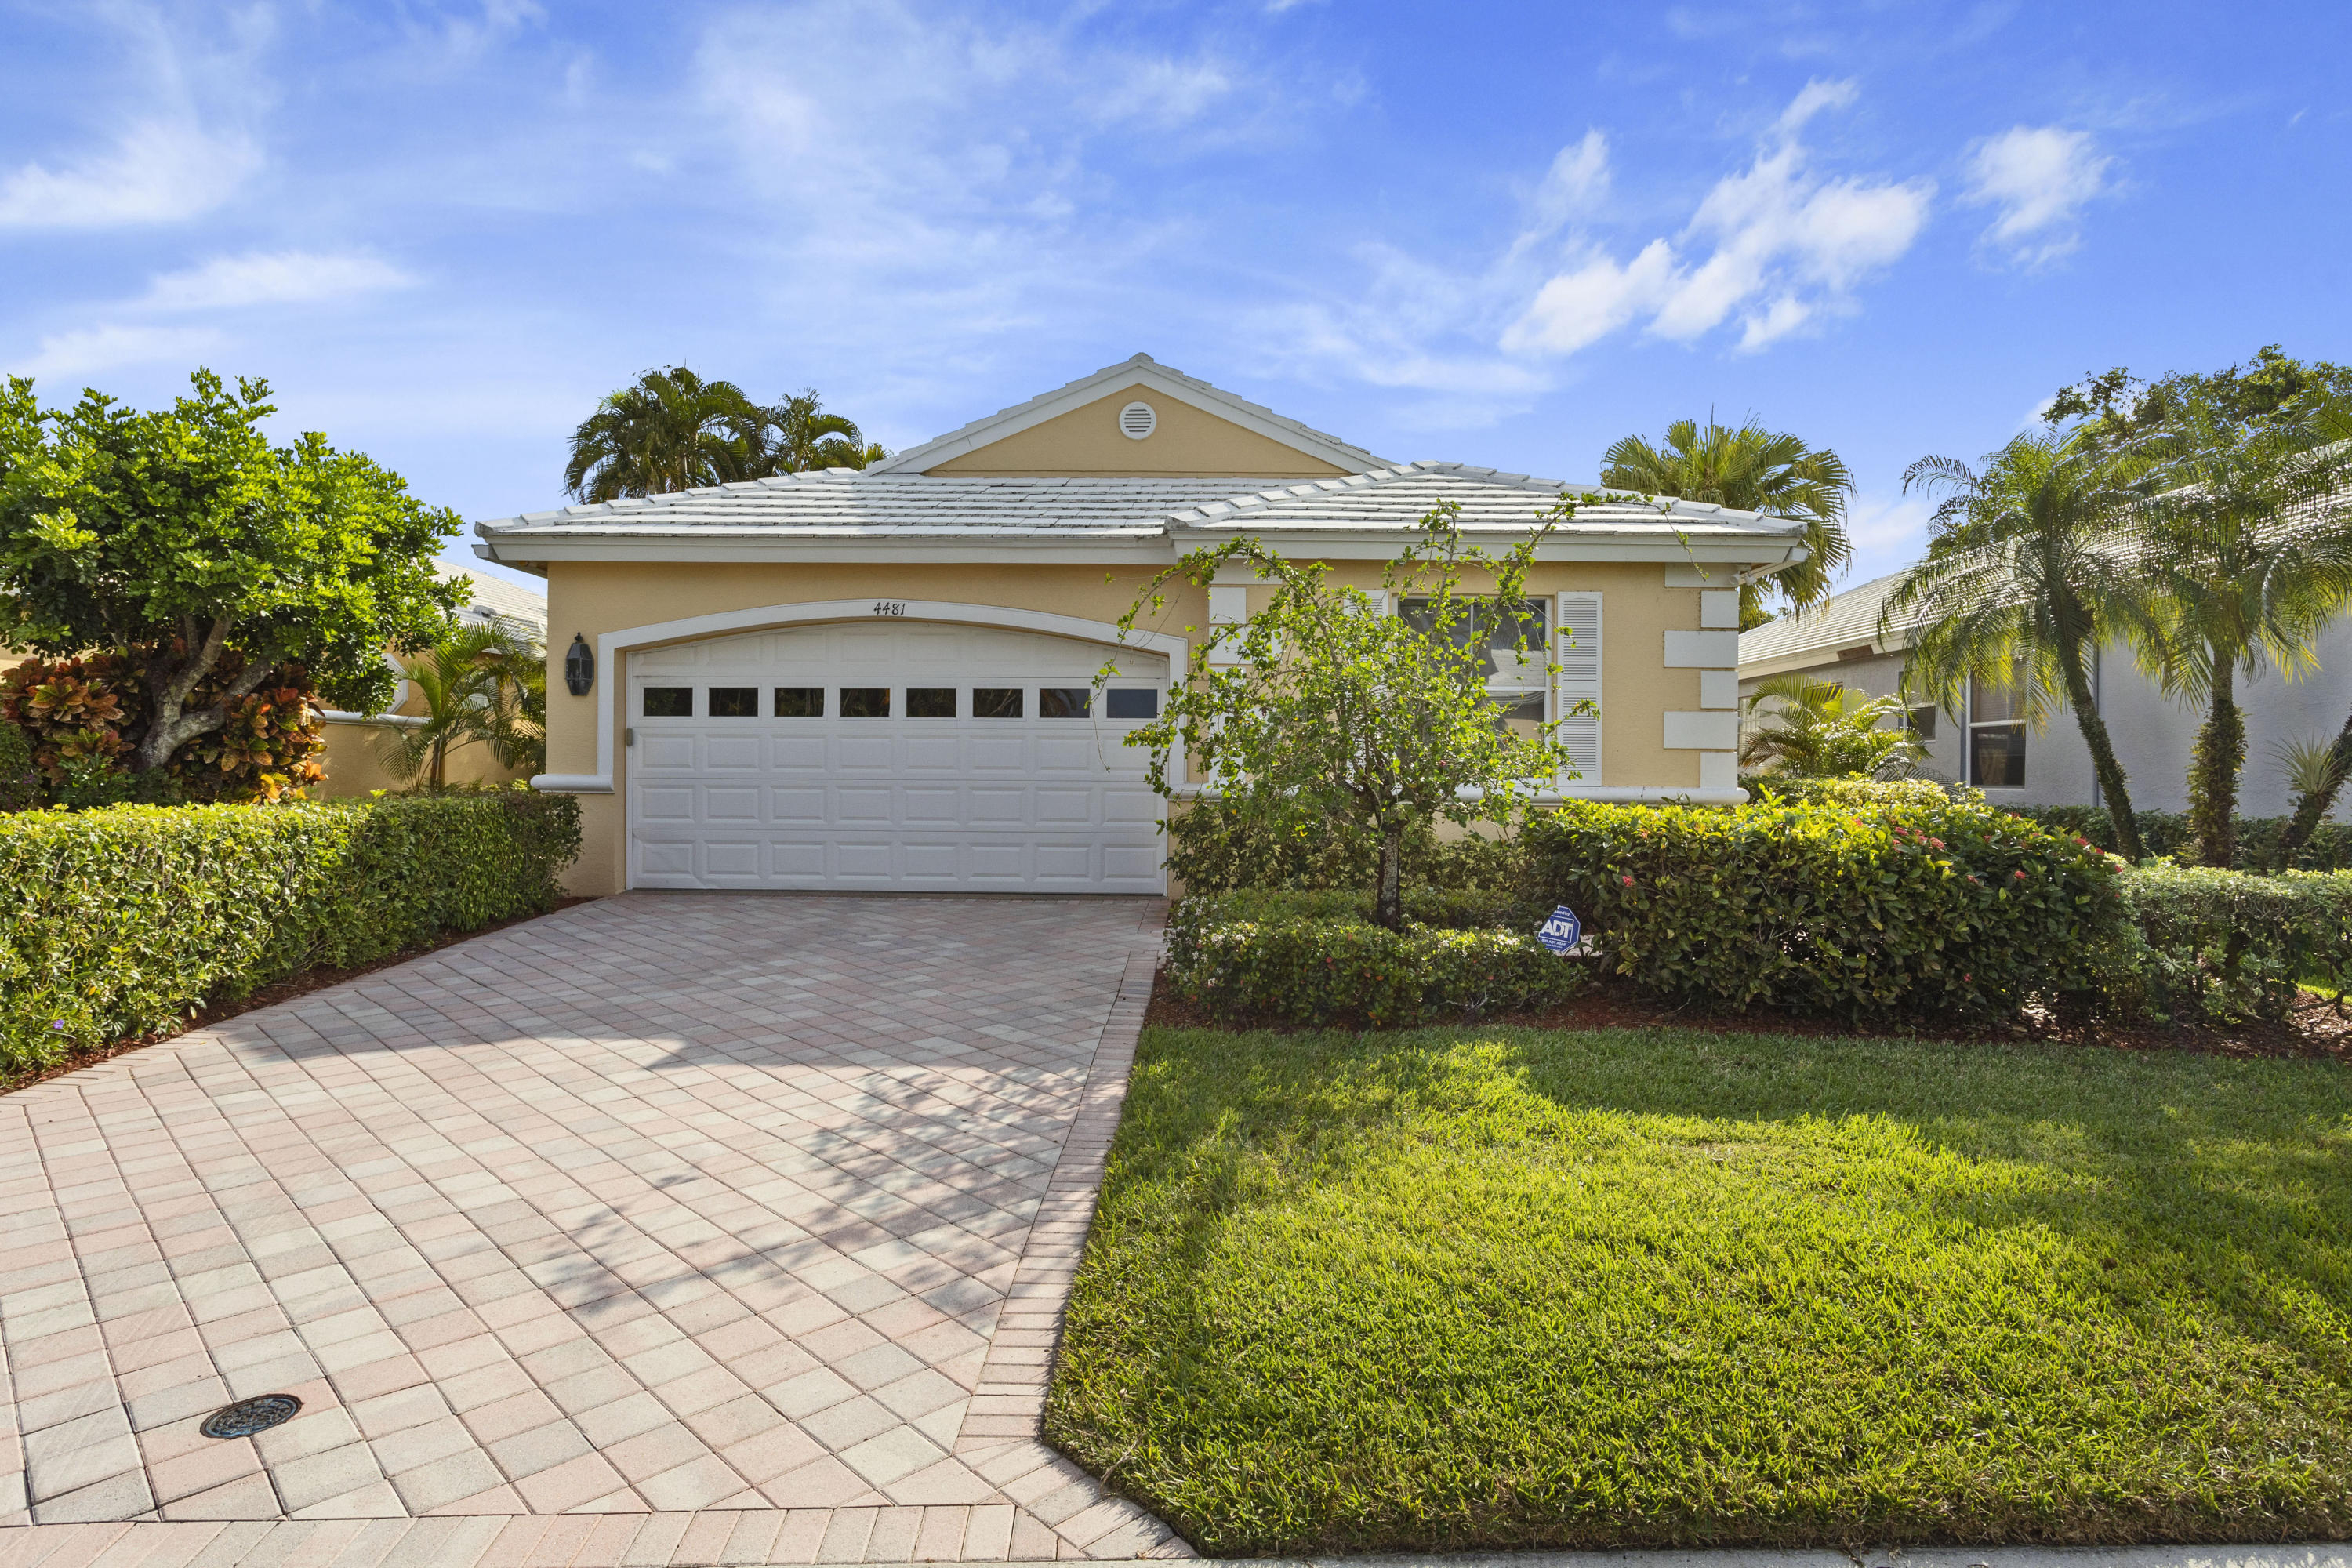 Home for sale in Wycliffe - Kensington Lake Worth Florida